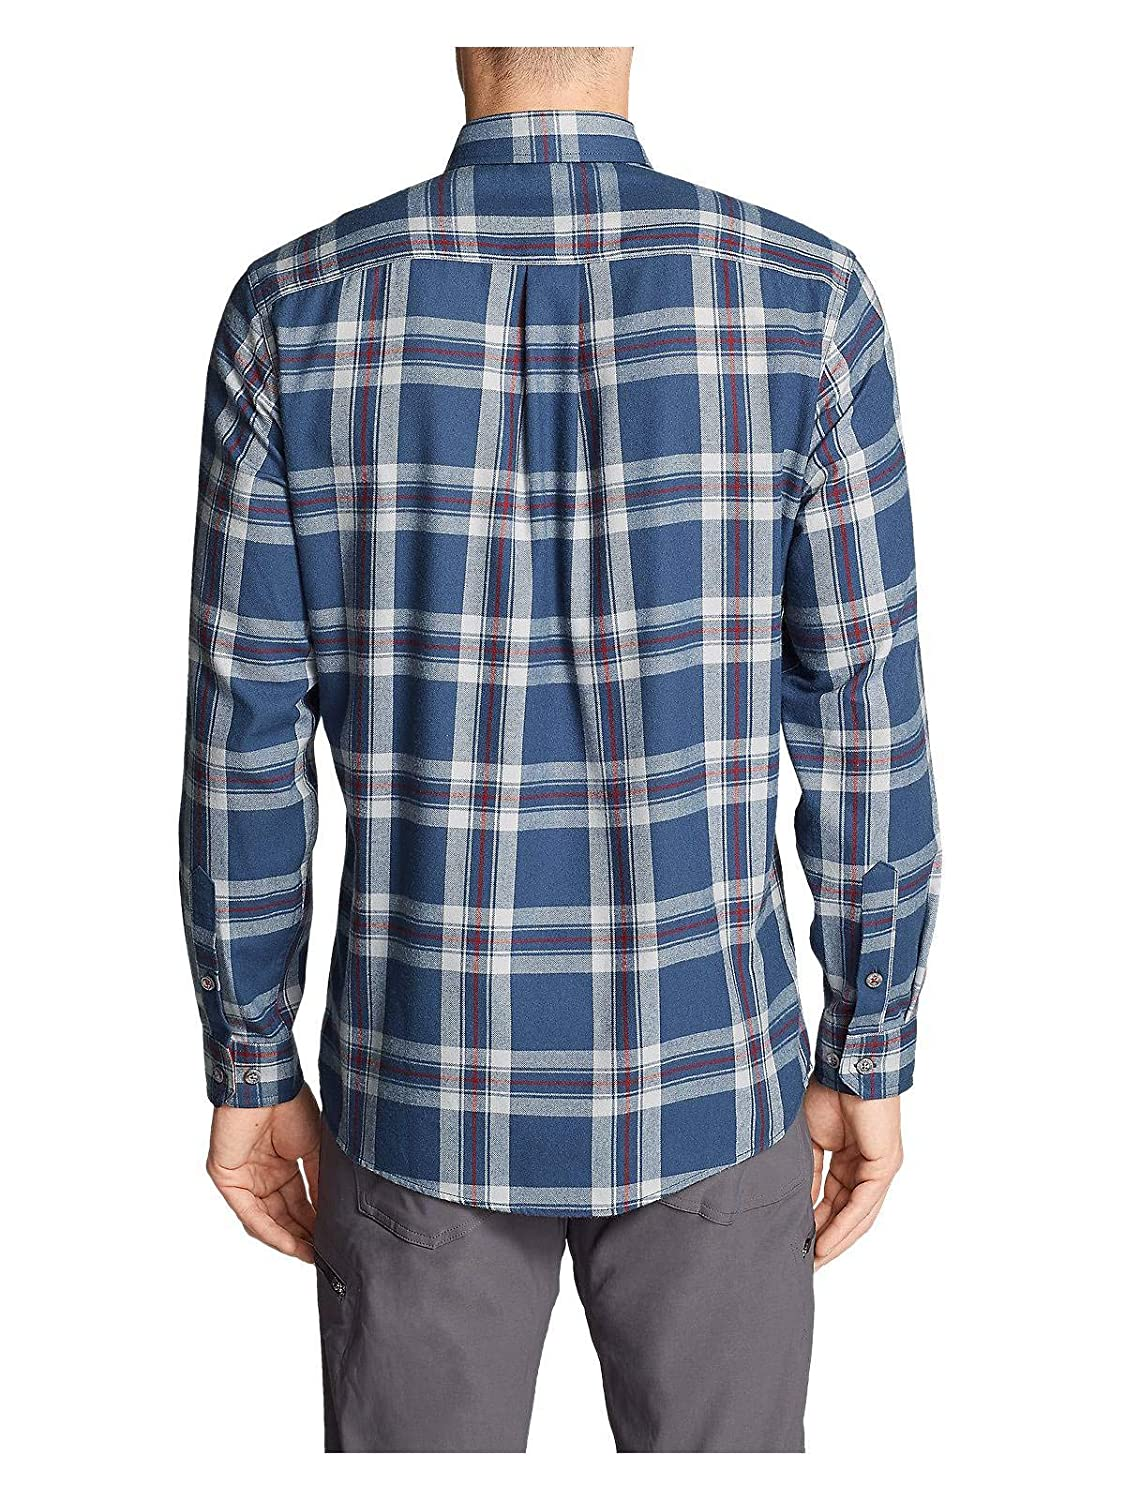 730f4513170 Eddie Bauer Men's Expedition Performance Flannel Shirt at Amazon Men's  Clothing store: